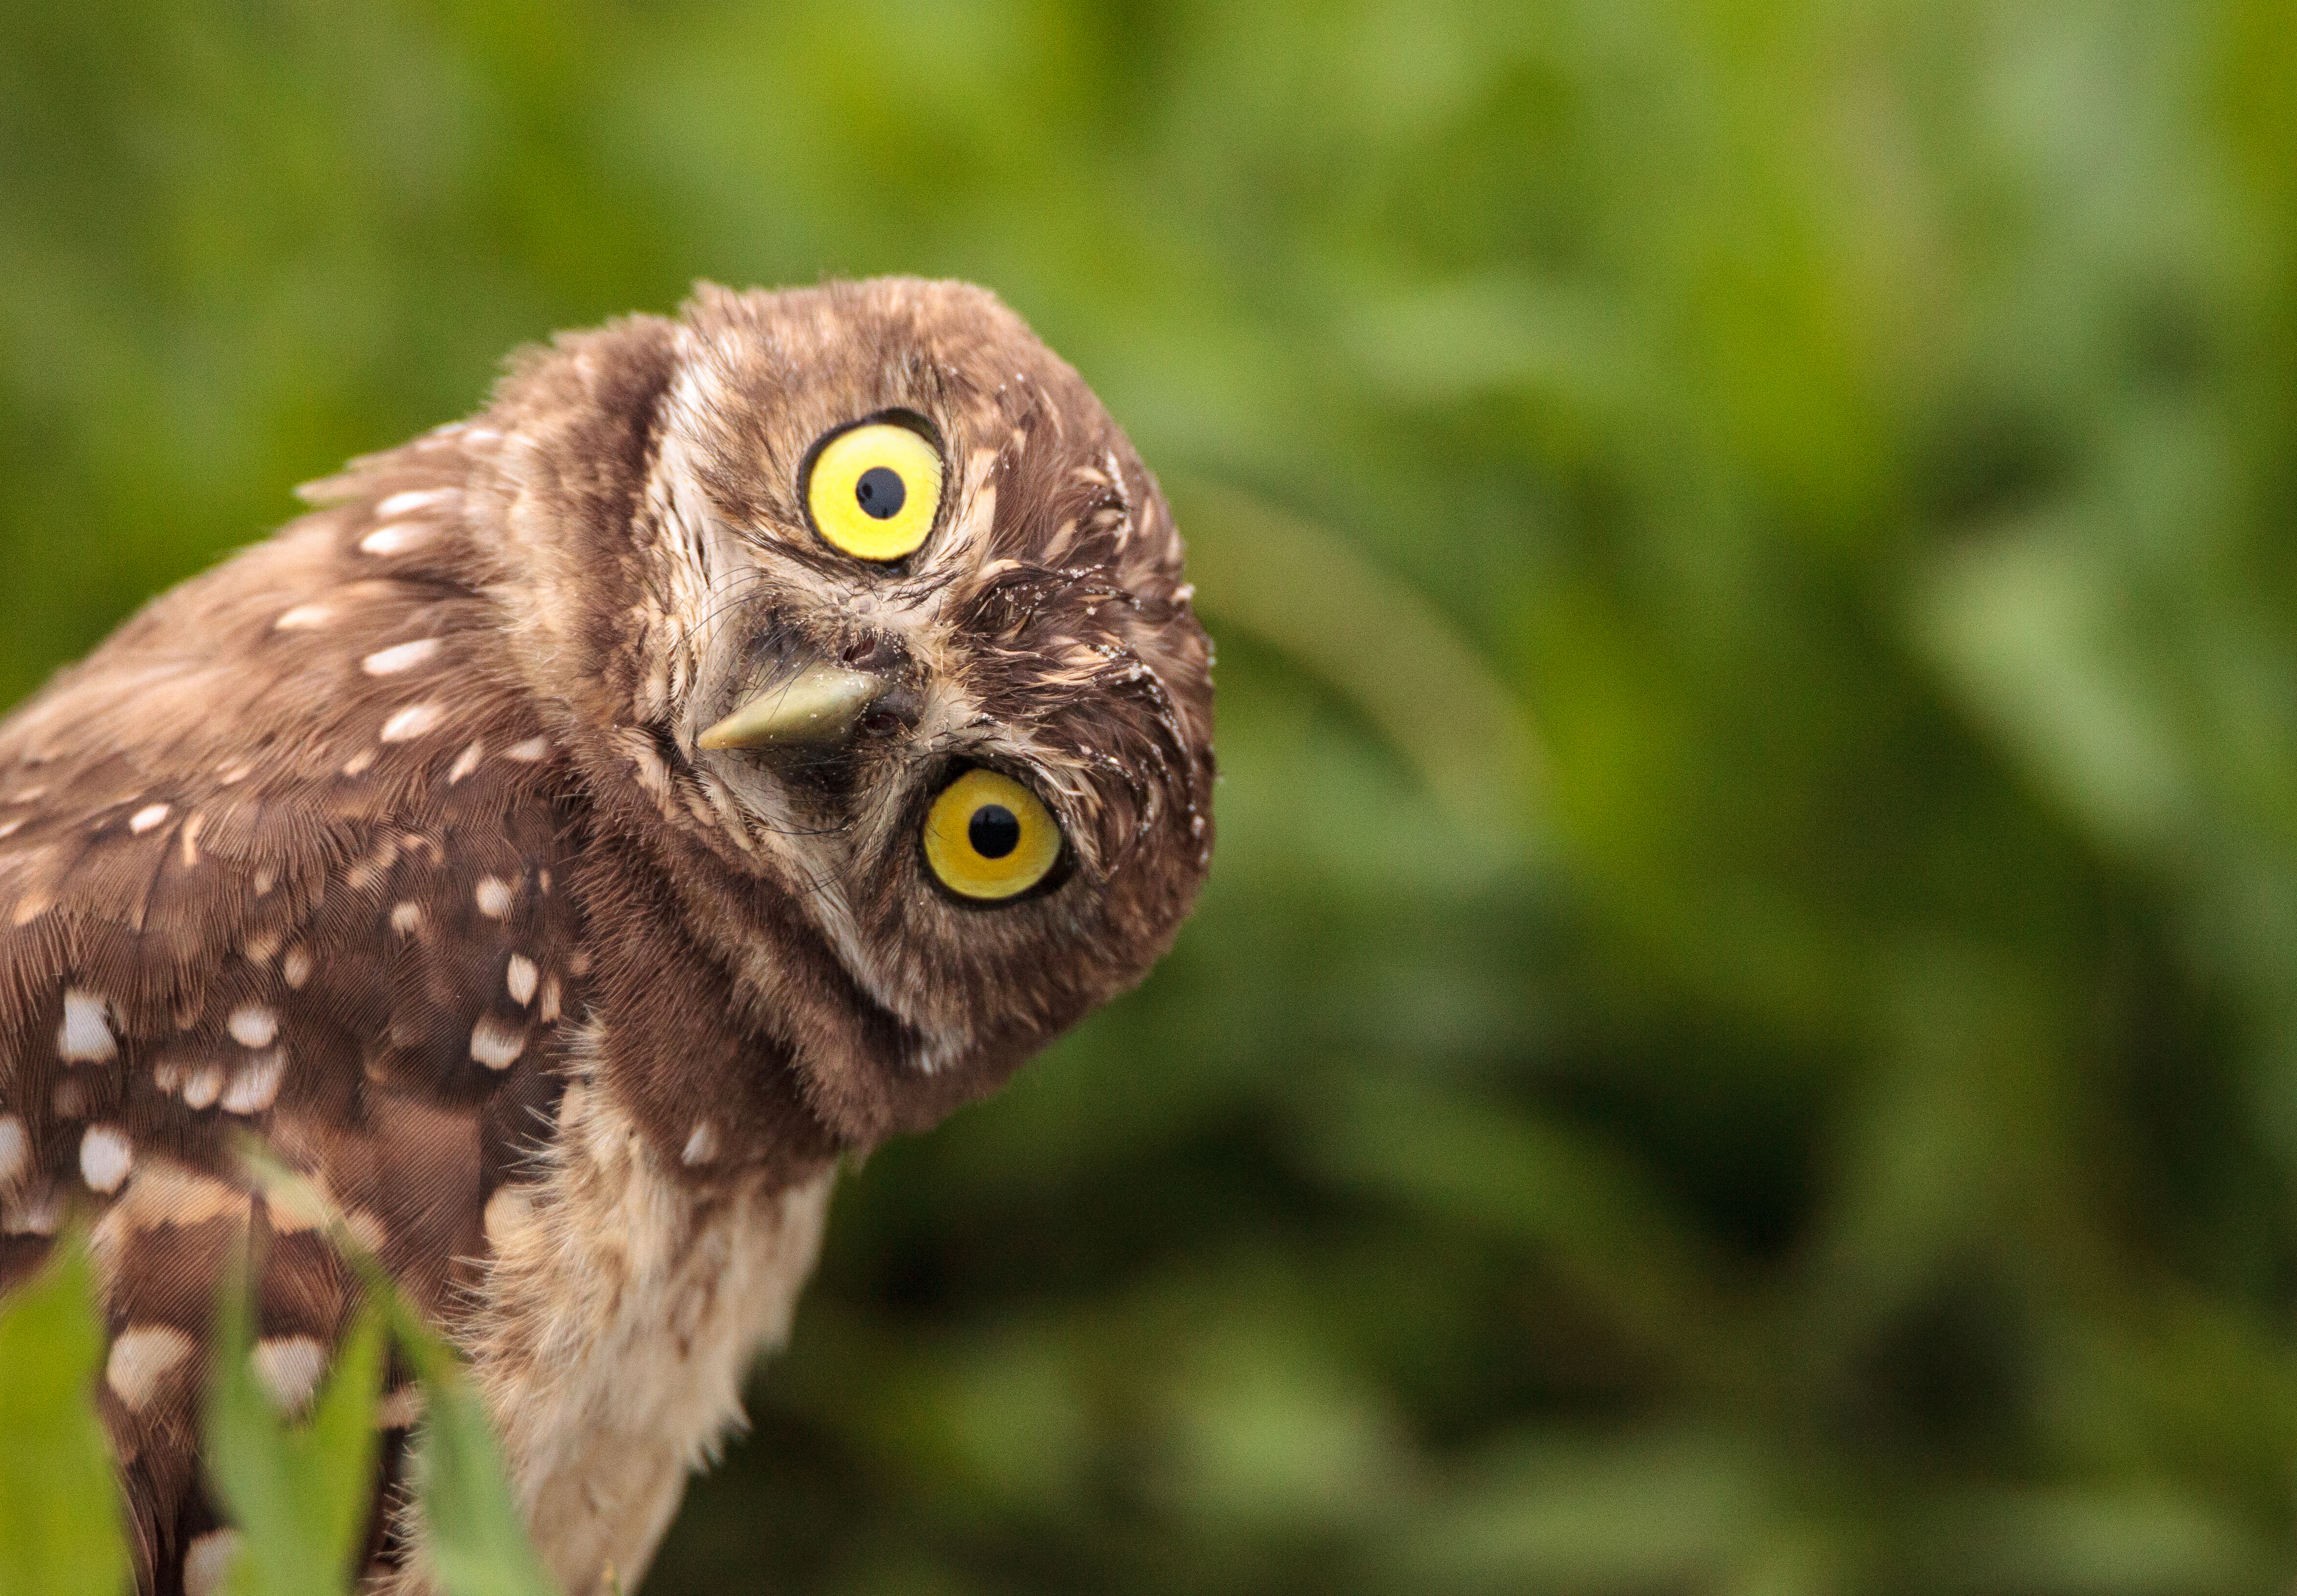 How to Make an Owl Leave Your Yard | Home Guides | SF Gate